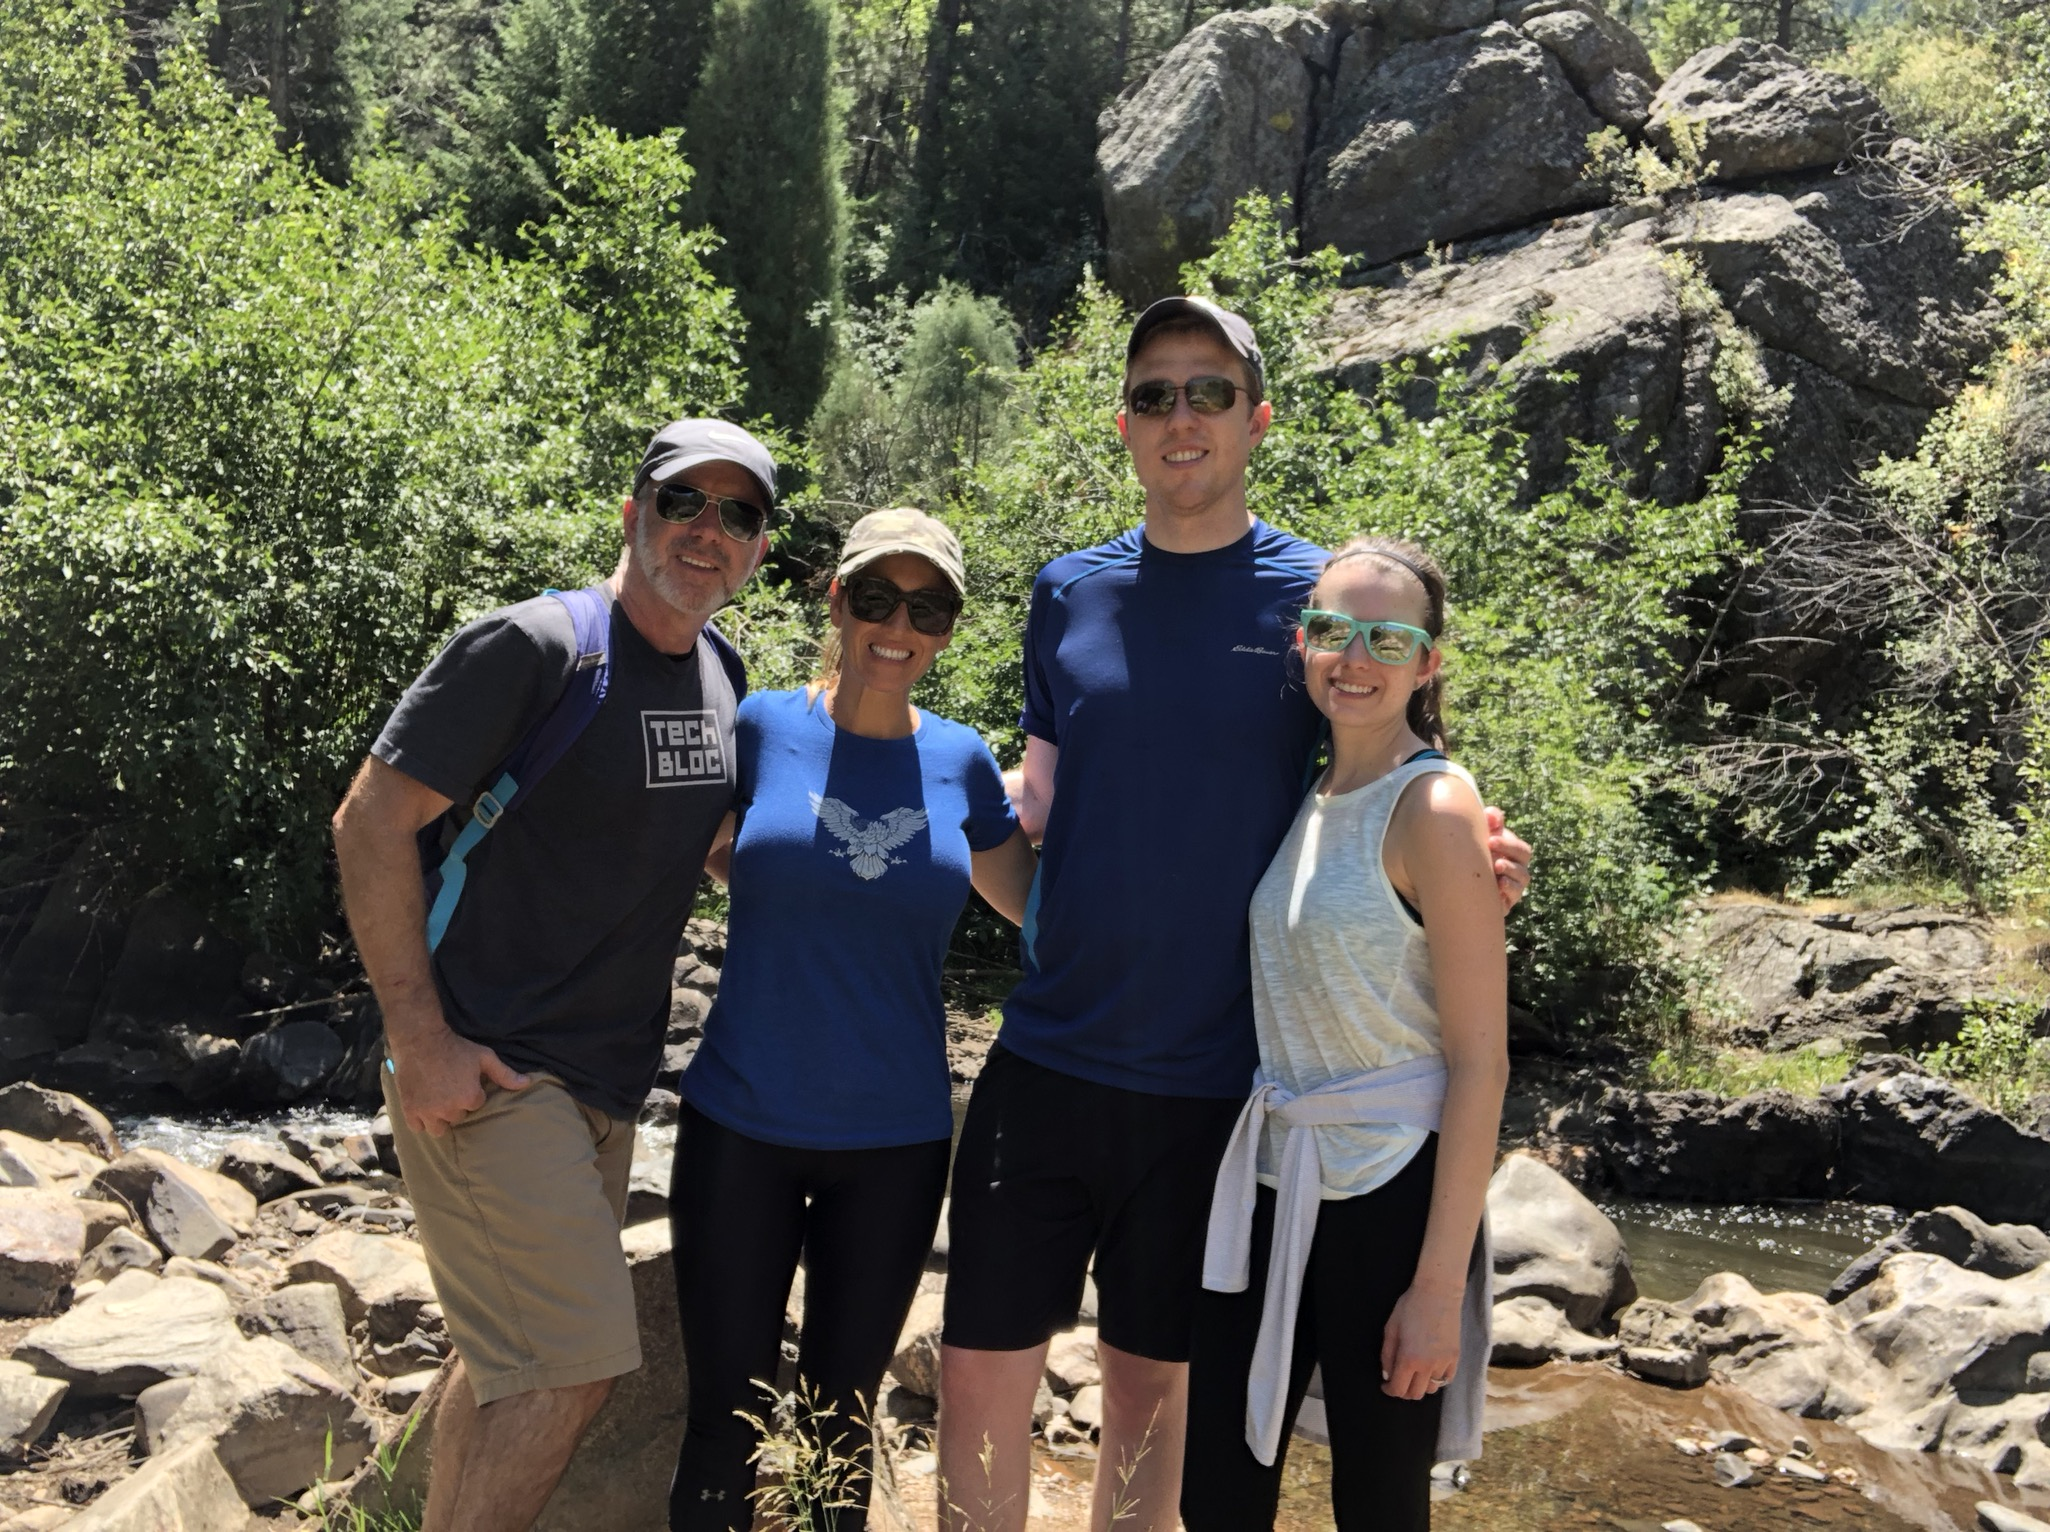 Matt and Hannah took us hiking in the Colorado Rockies